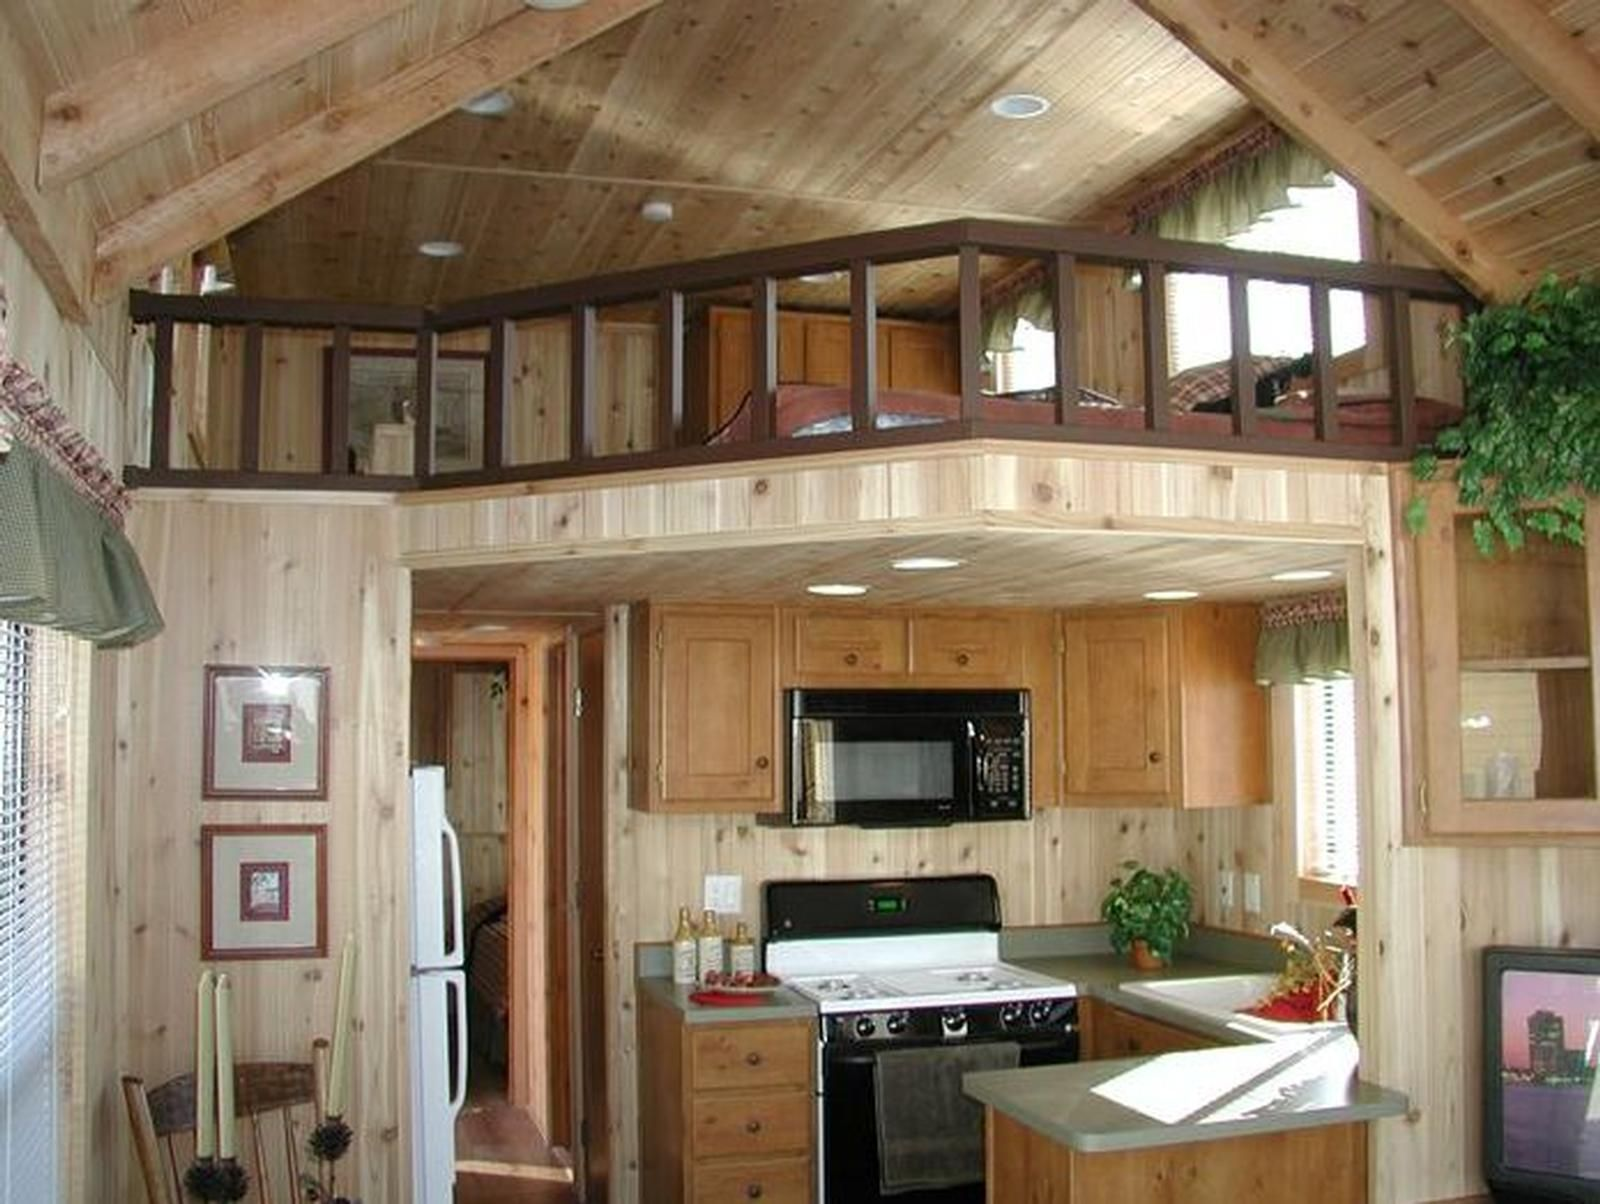 Park Model Homes Cabins Are A Great Way To Get Away Our